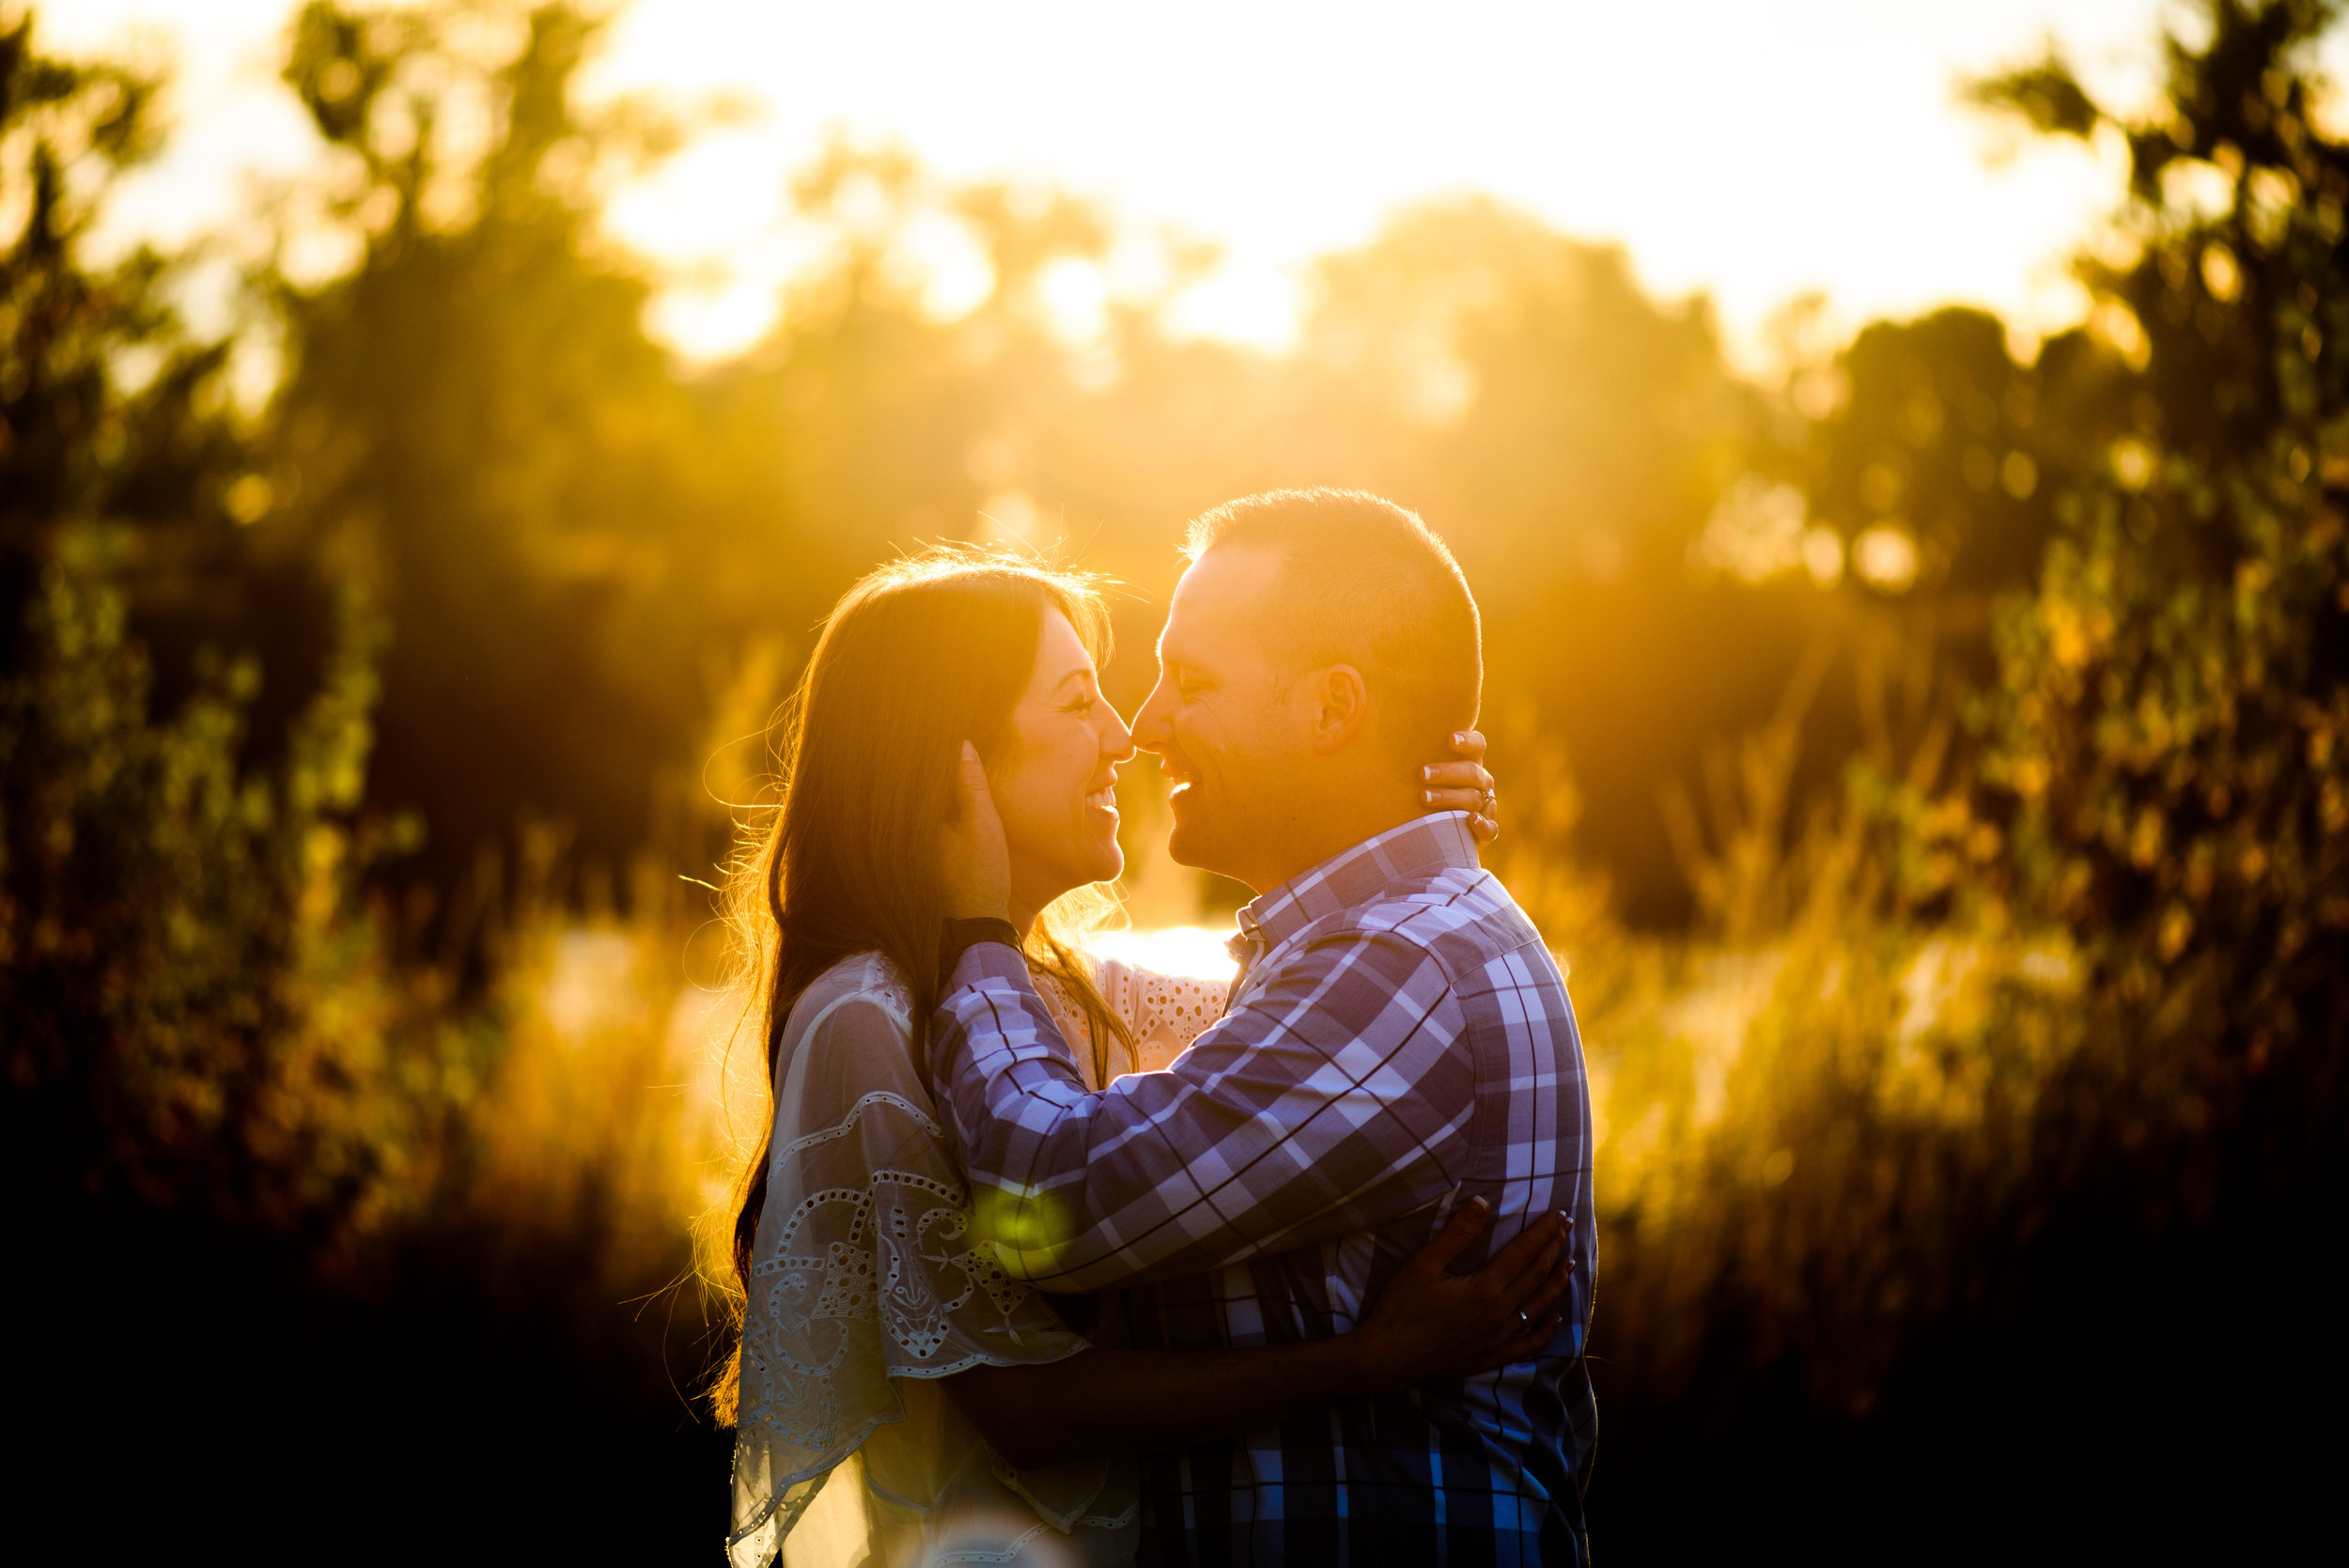 nicole-luke-007-sacramento-engagement-wedding-photographer-katherine-nicole-photography.JPG